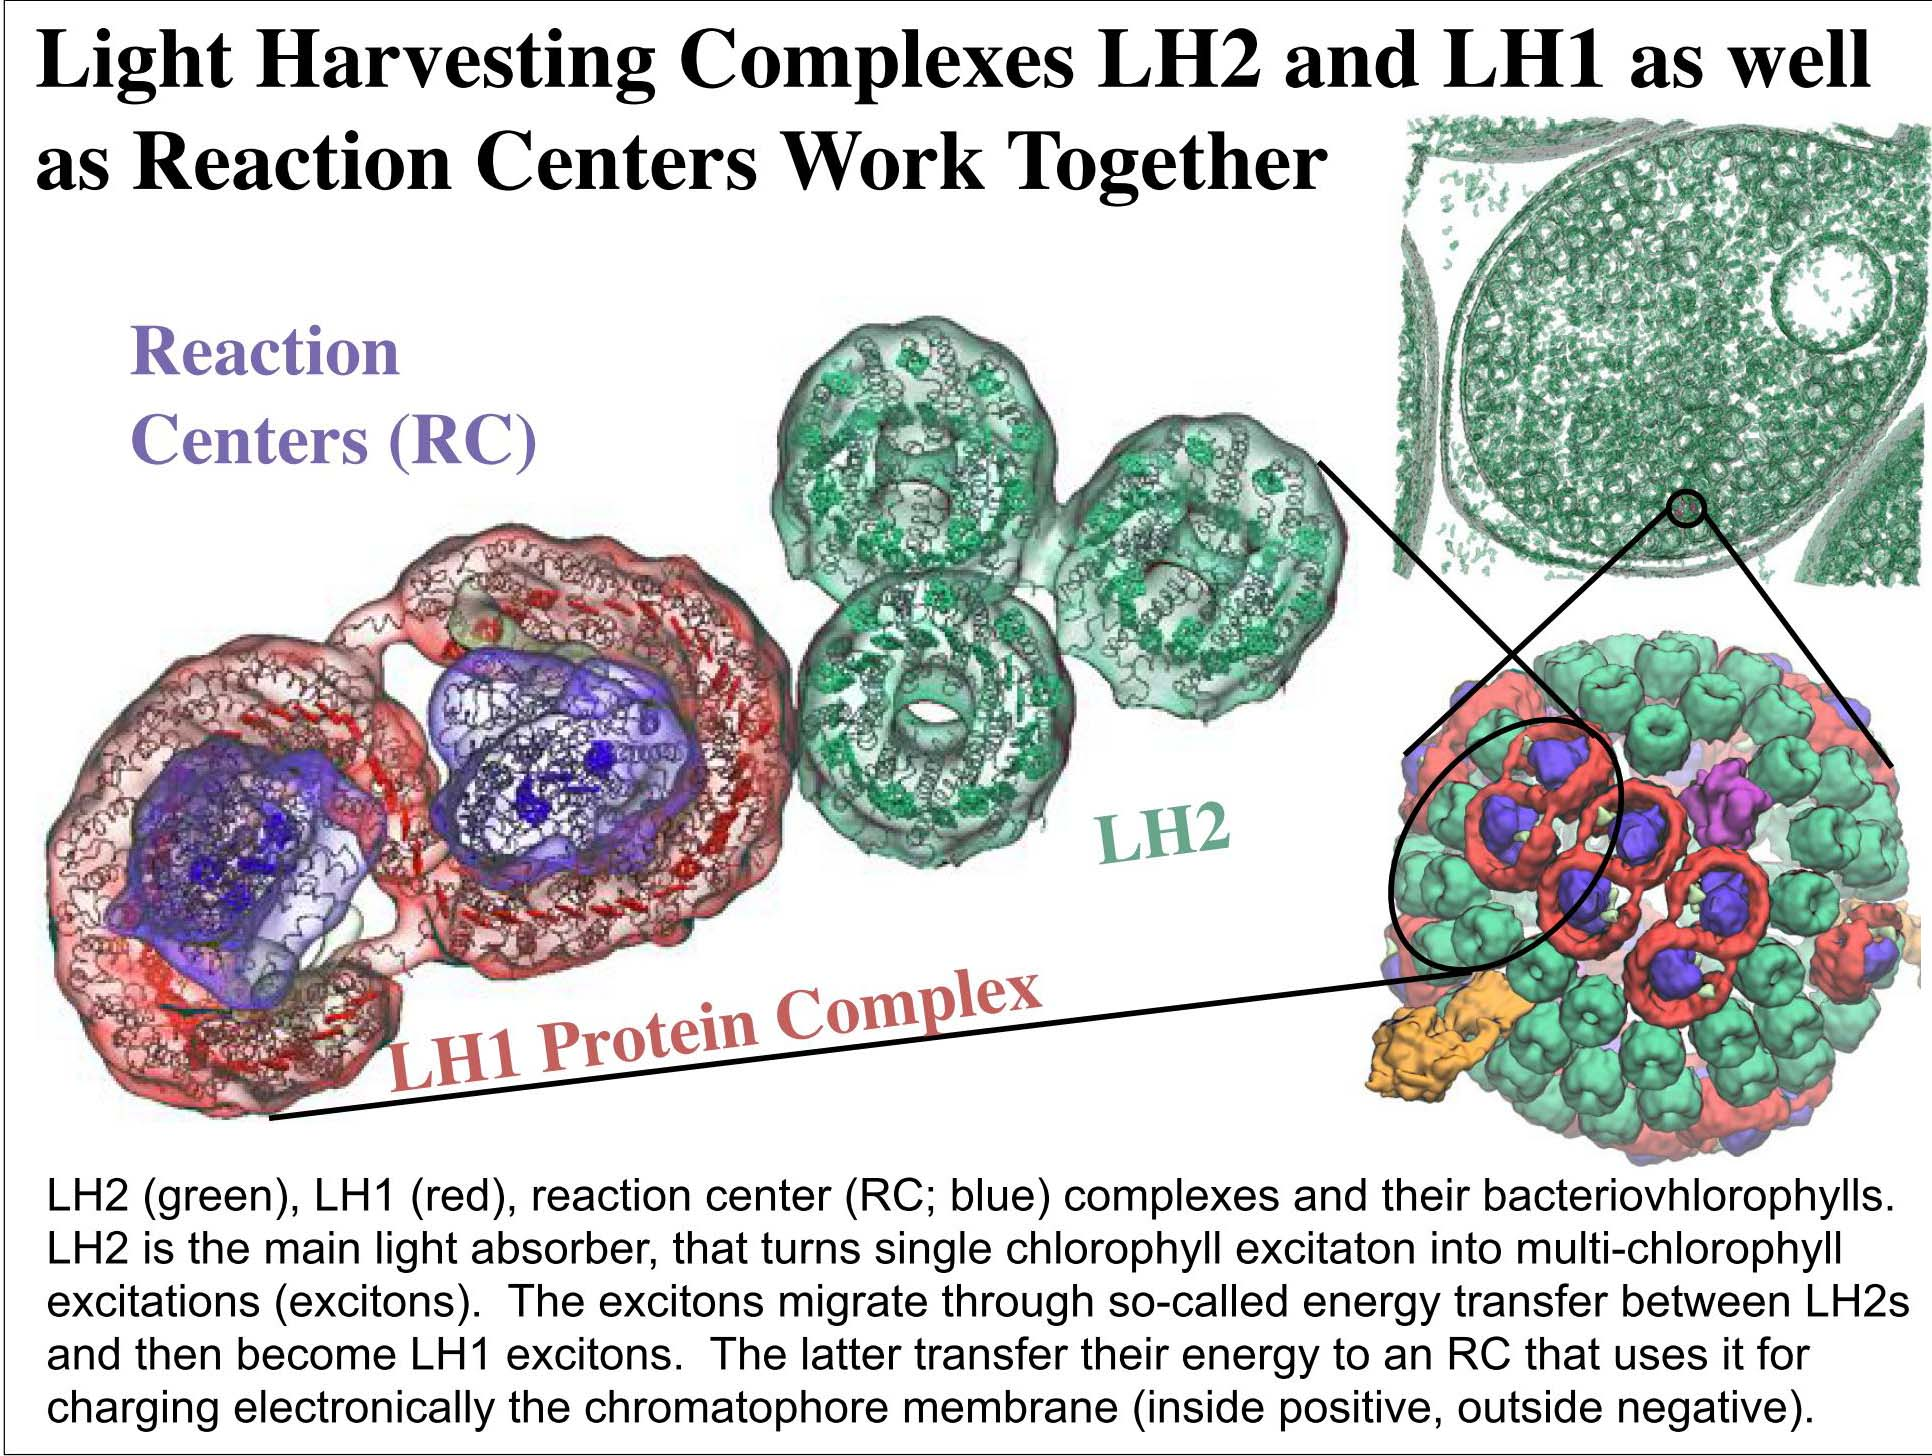 Light Harvesting Complexes LH2 and LH1 as well as Reaction Centers work together